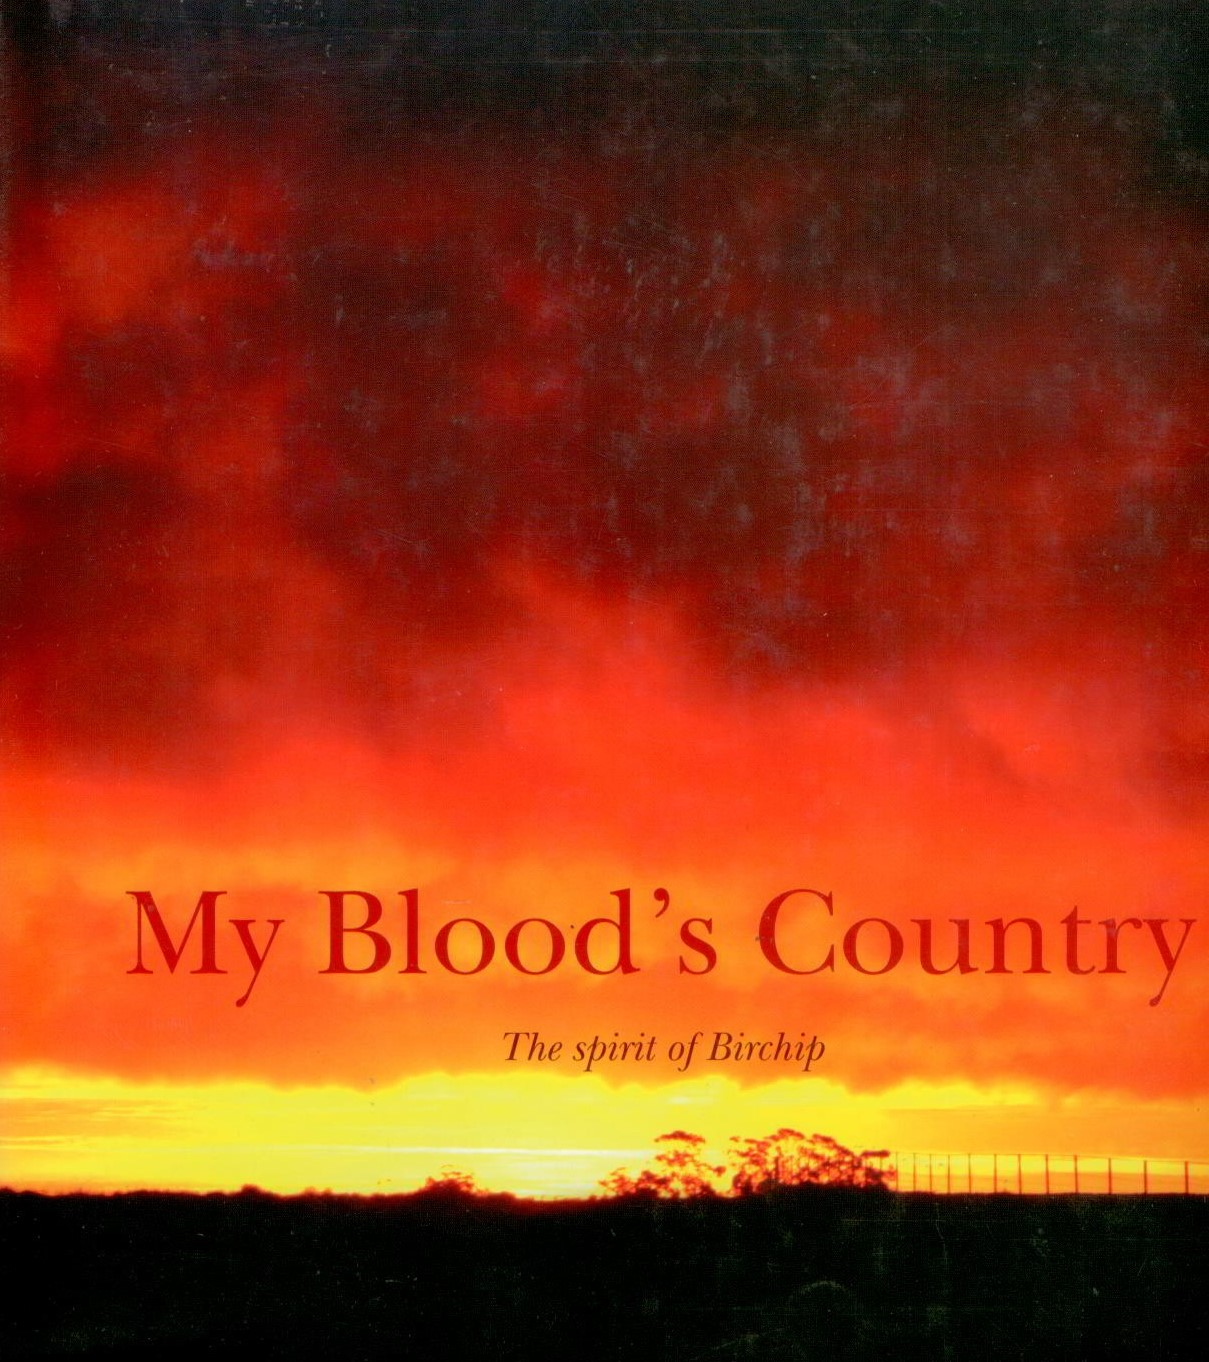 My Blood's Country : The Spirit of Birchip